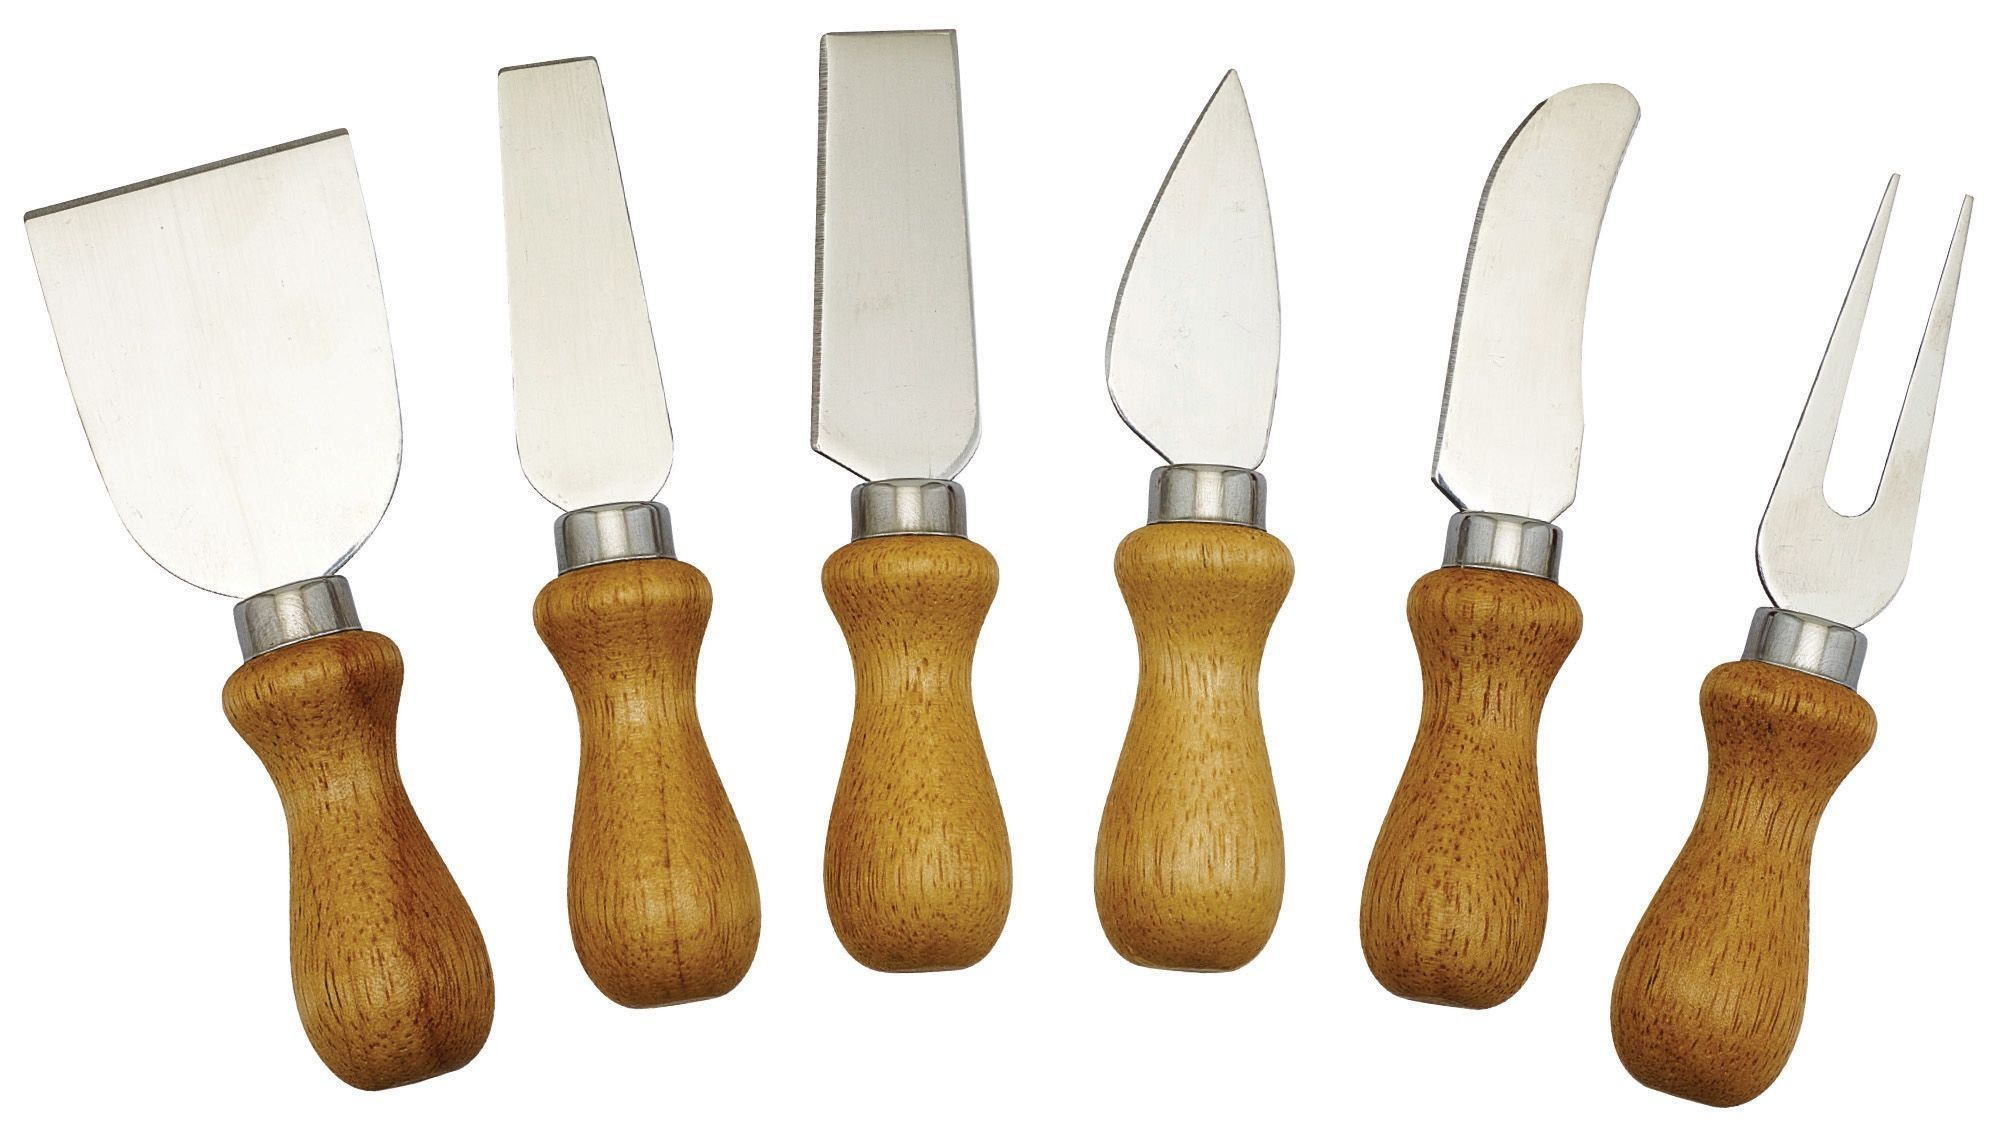 Winco KCS-6W 6-Piece Cheese Knife Set with Wooden Handle